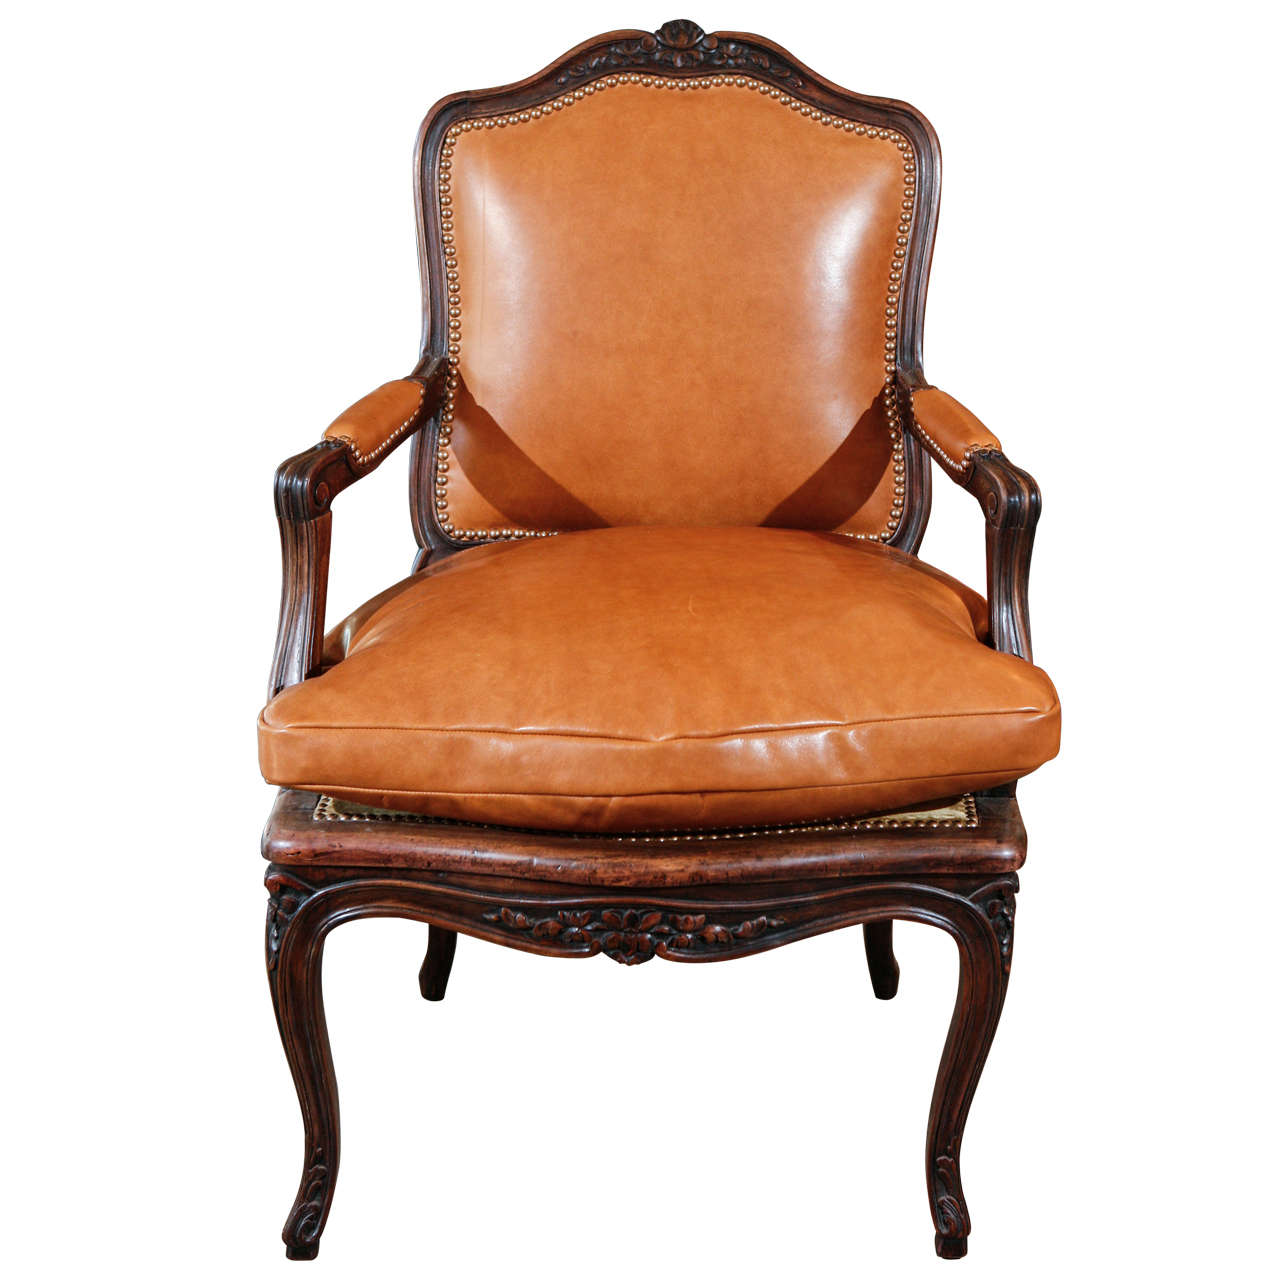 French louis xv leather arm chair at 1stdibs - Second hand egg chair ...